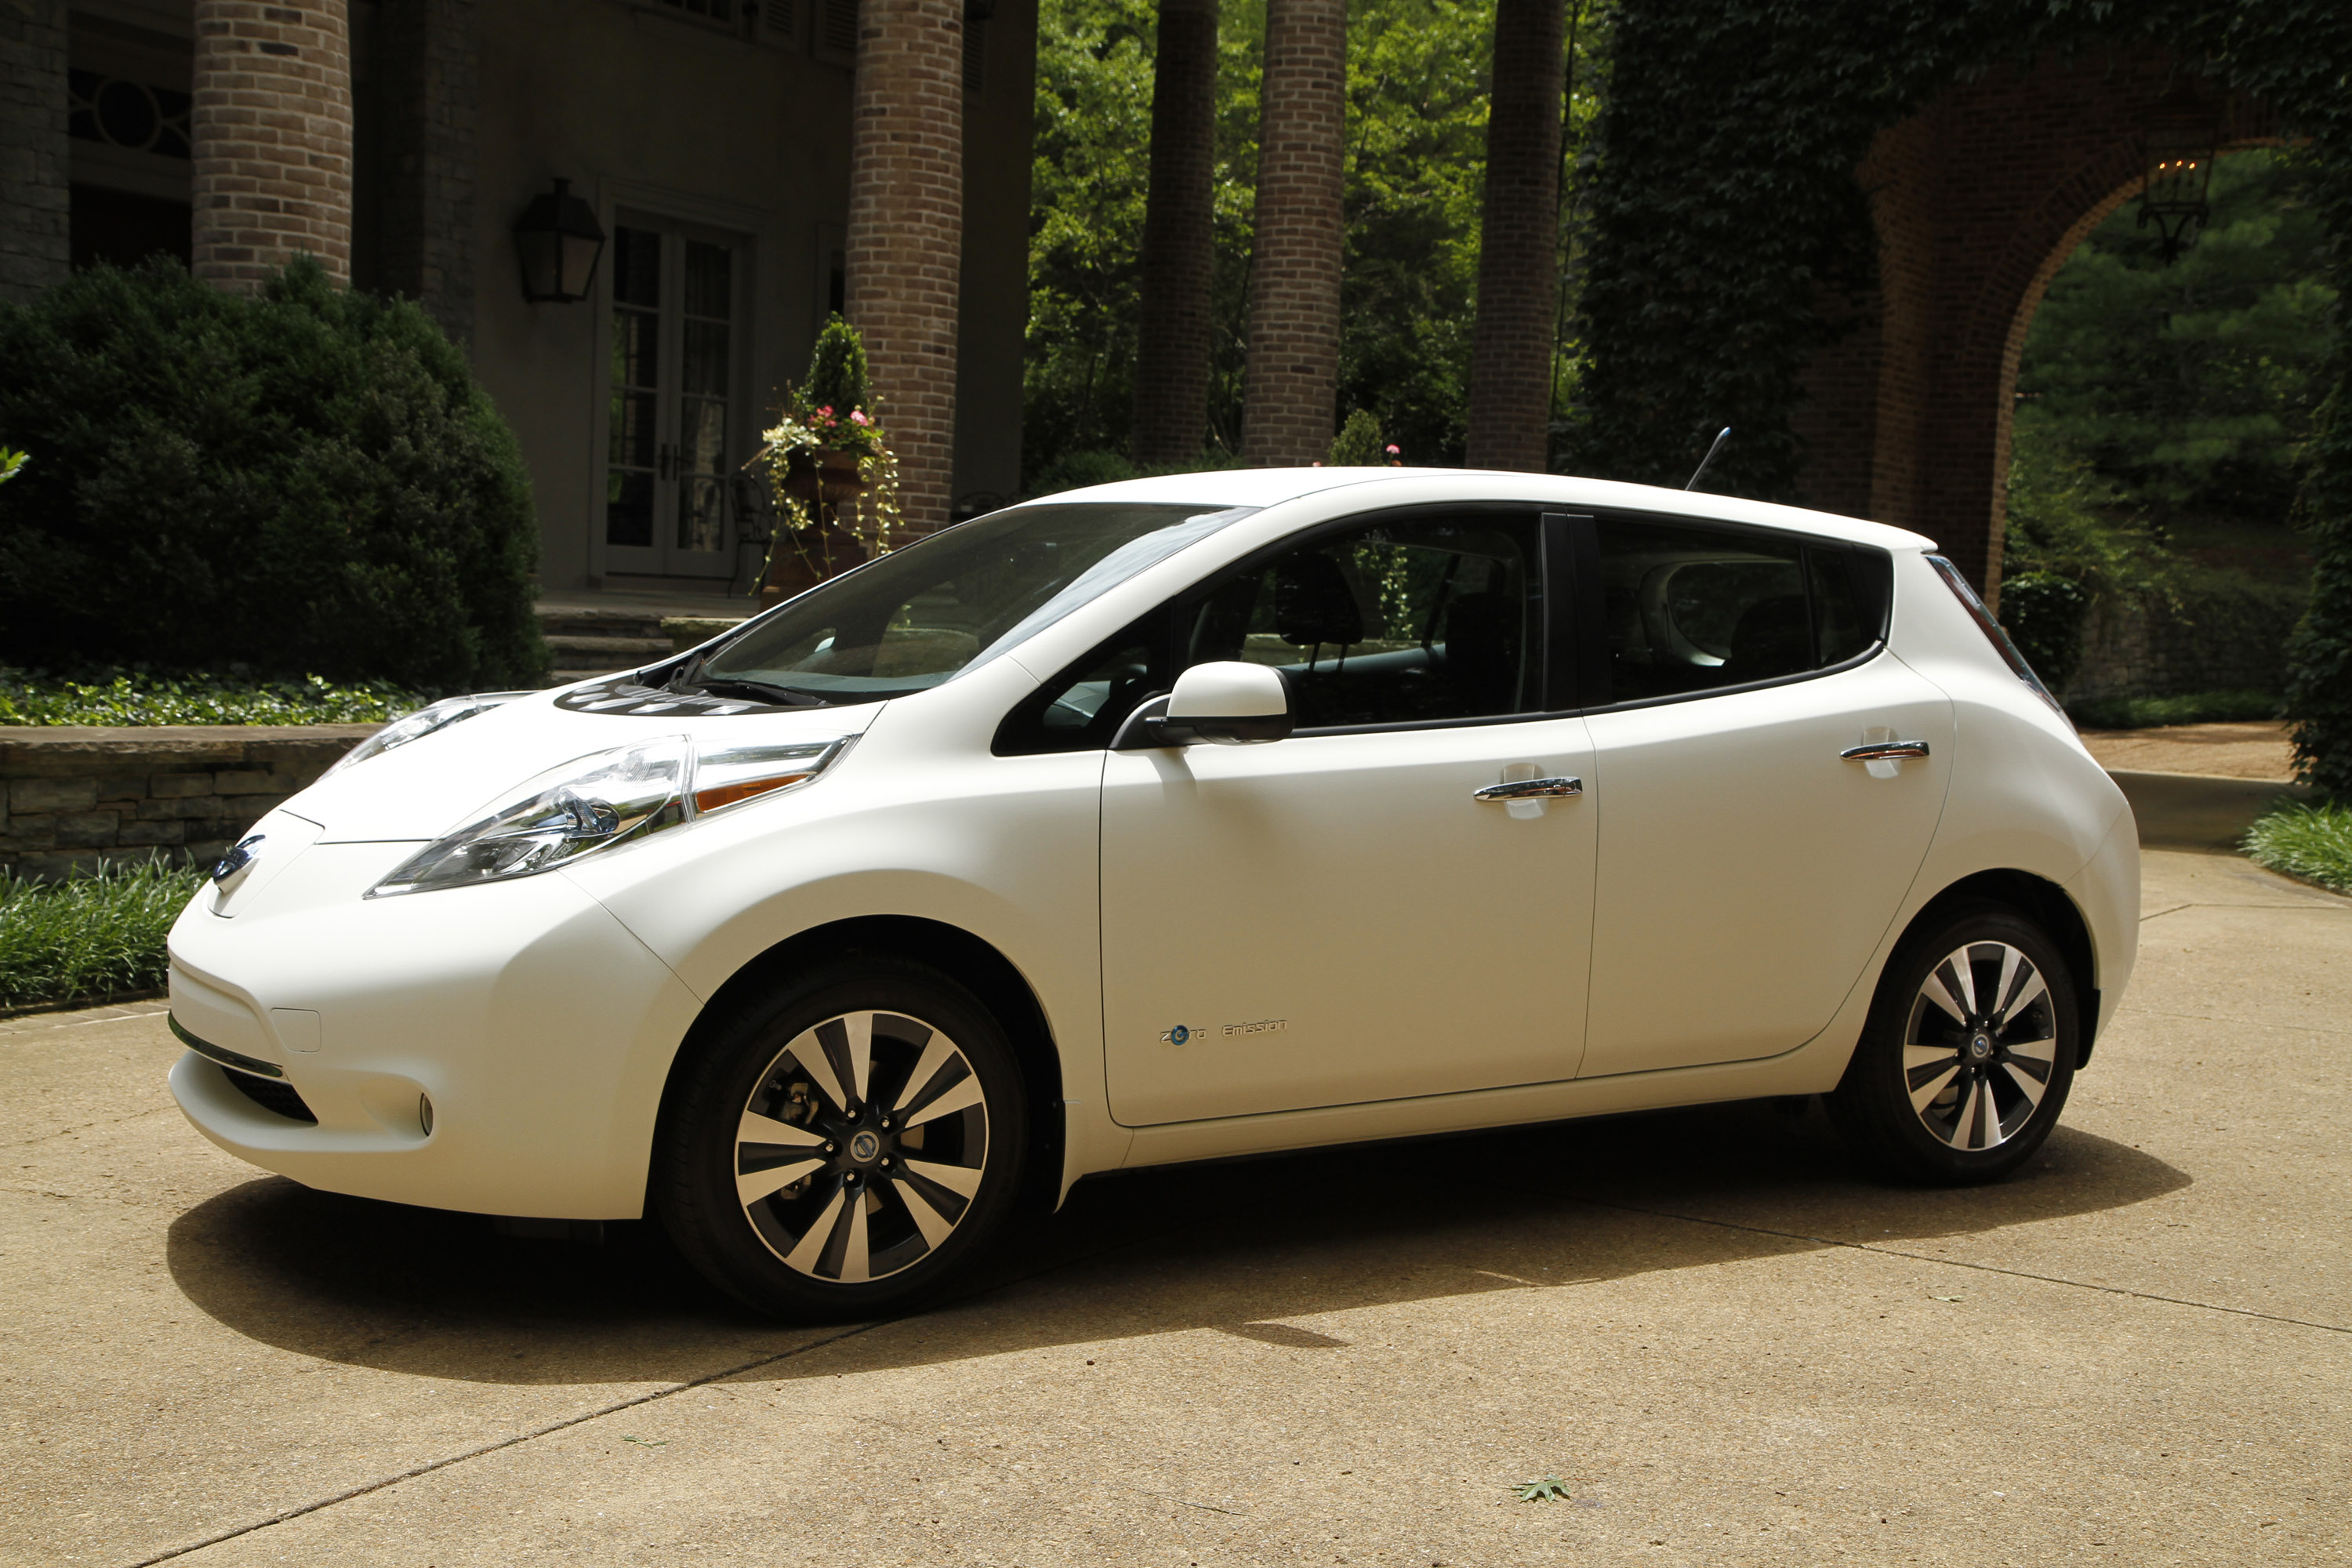 nissan leaf the world 39 s cleanest self washing car. Black Bedroom Furniture Sets. Home Design Ideas